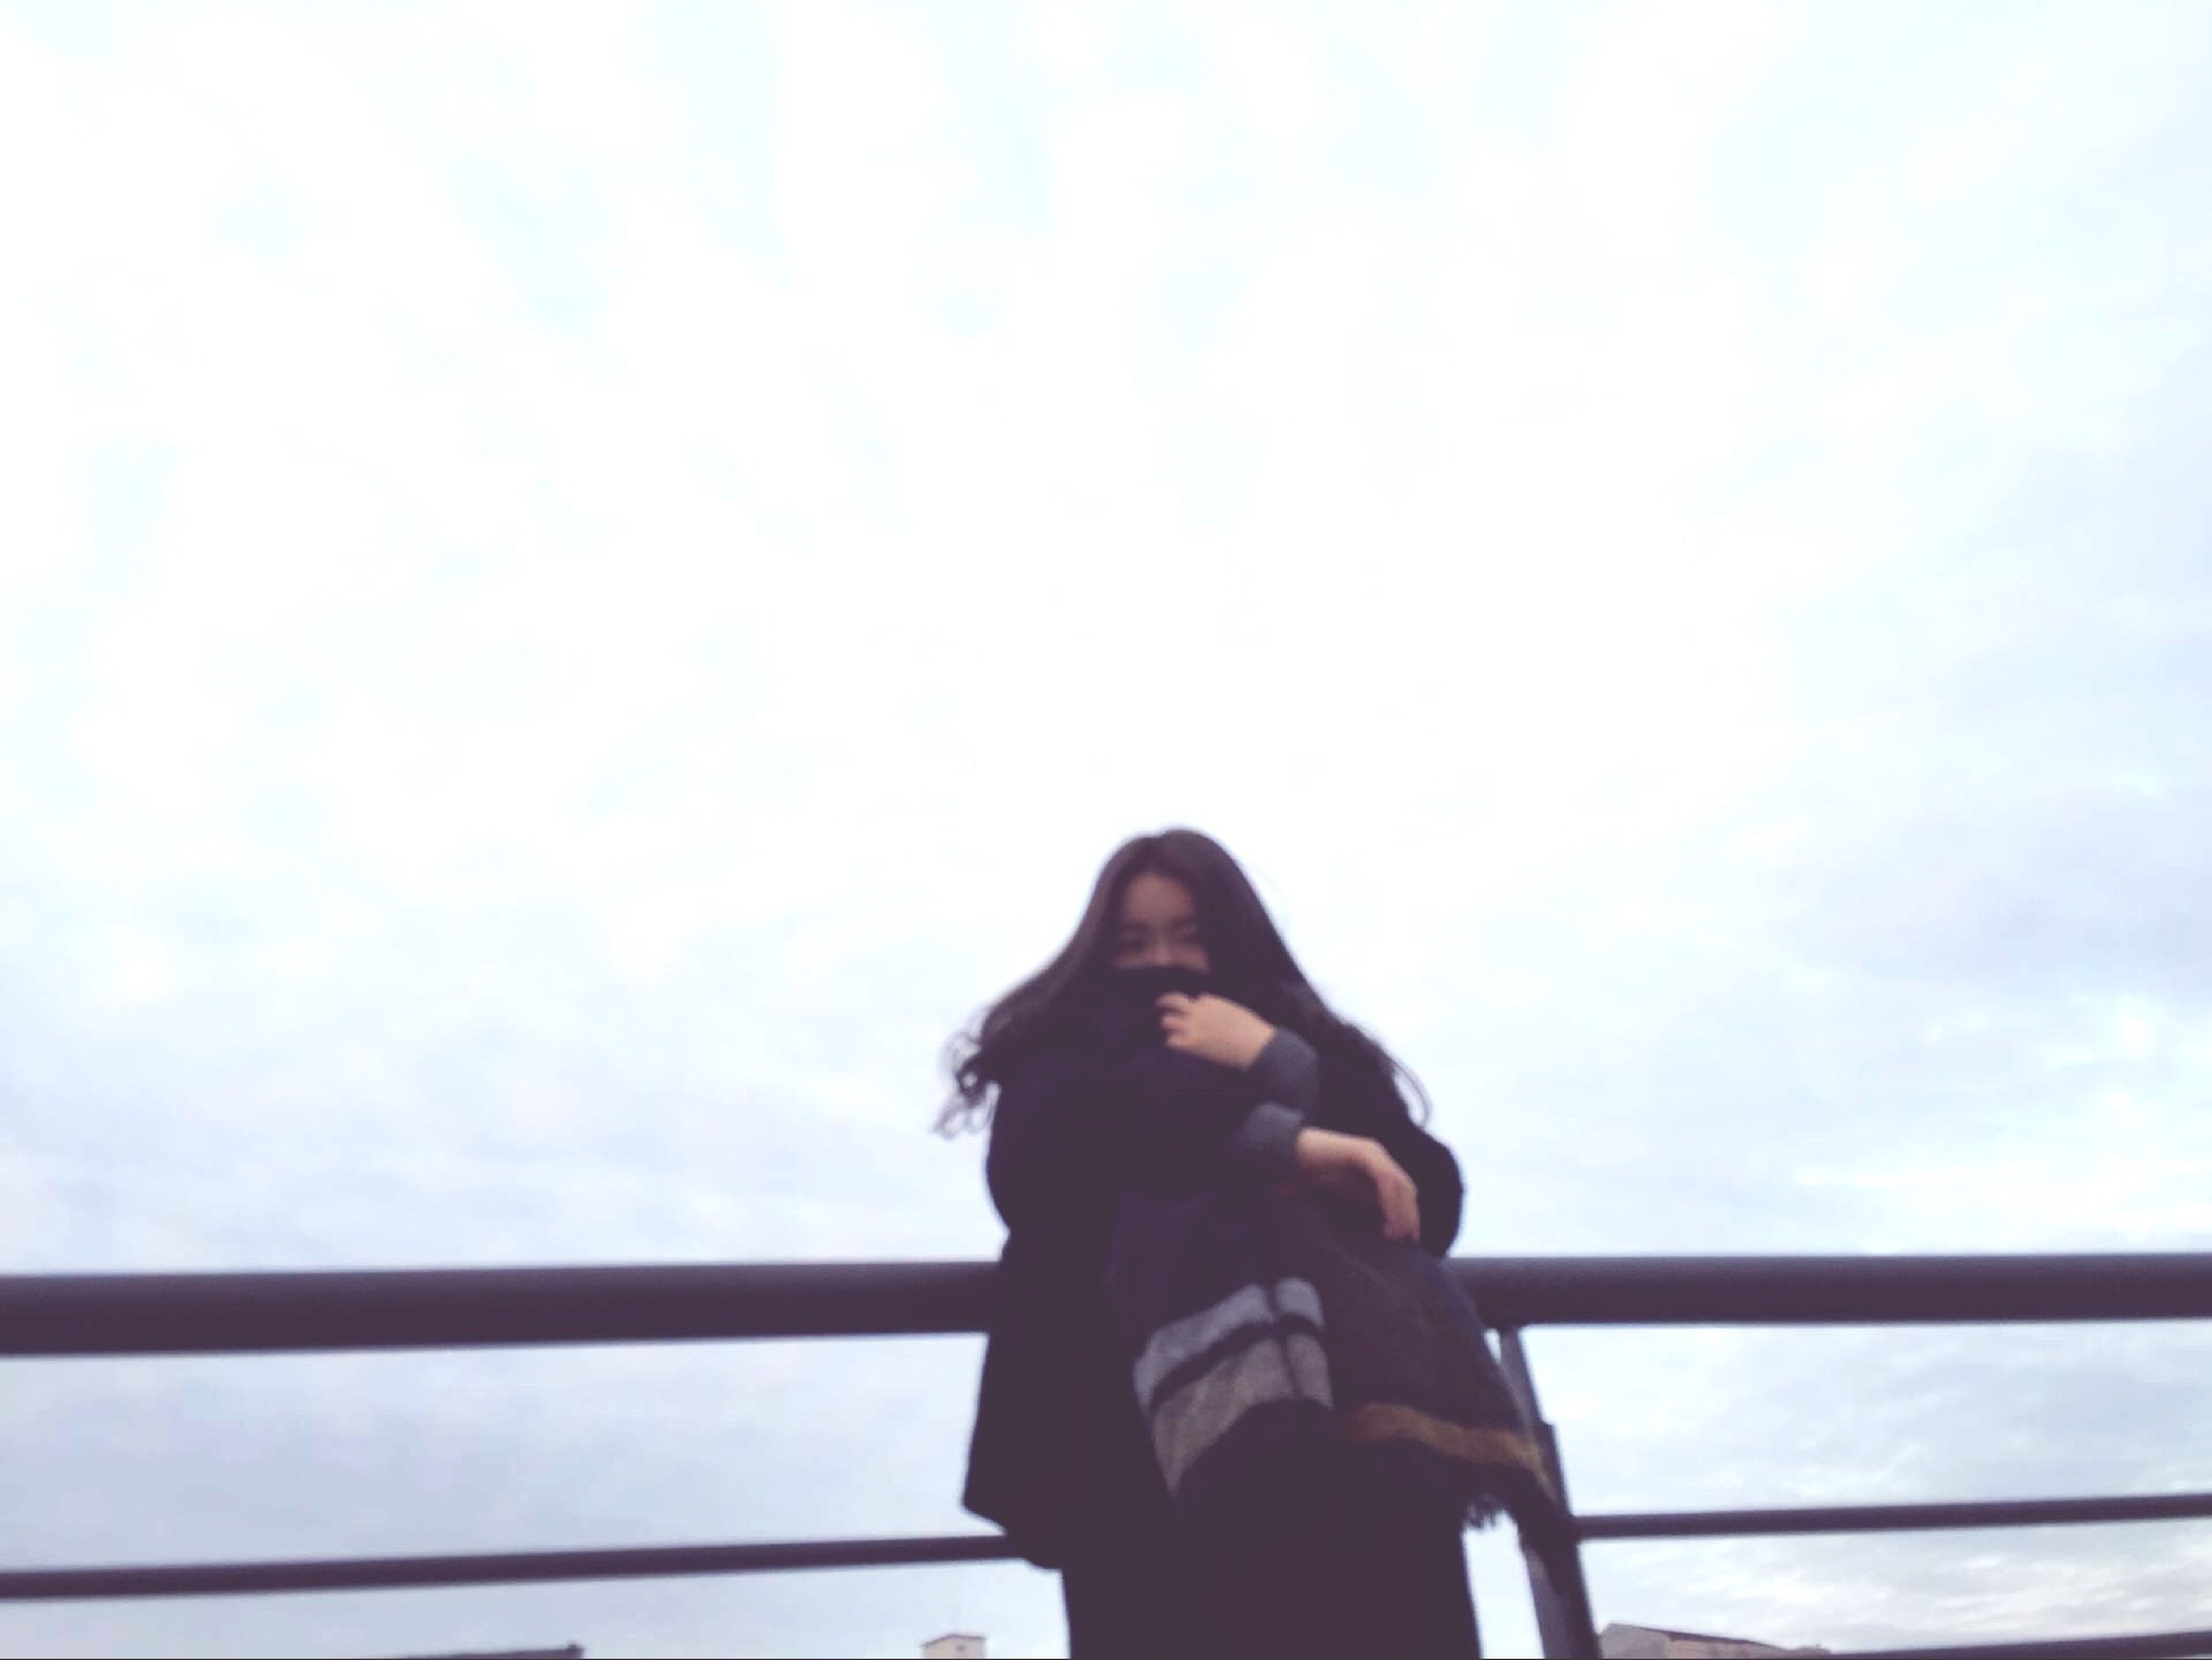 waist up, sky, lifestyles, standing, low angle view, three quarter length, leisure activity, young adult, casual clothing, railing, headshot, day, cloud - sky, rear view, outdoors, side view, looking away, cloud